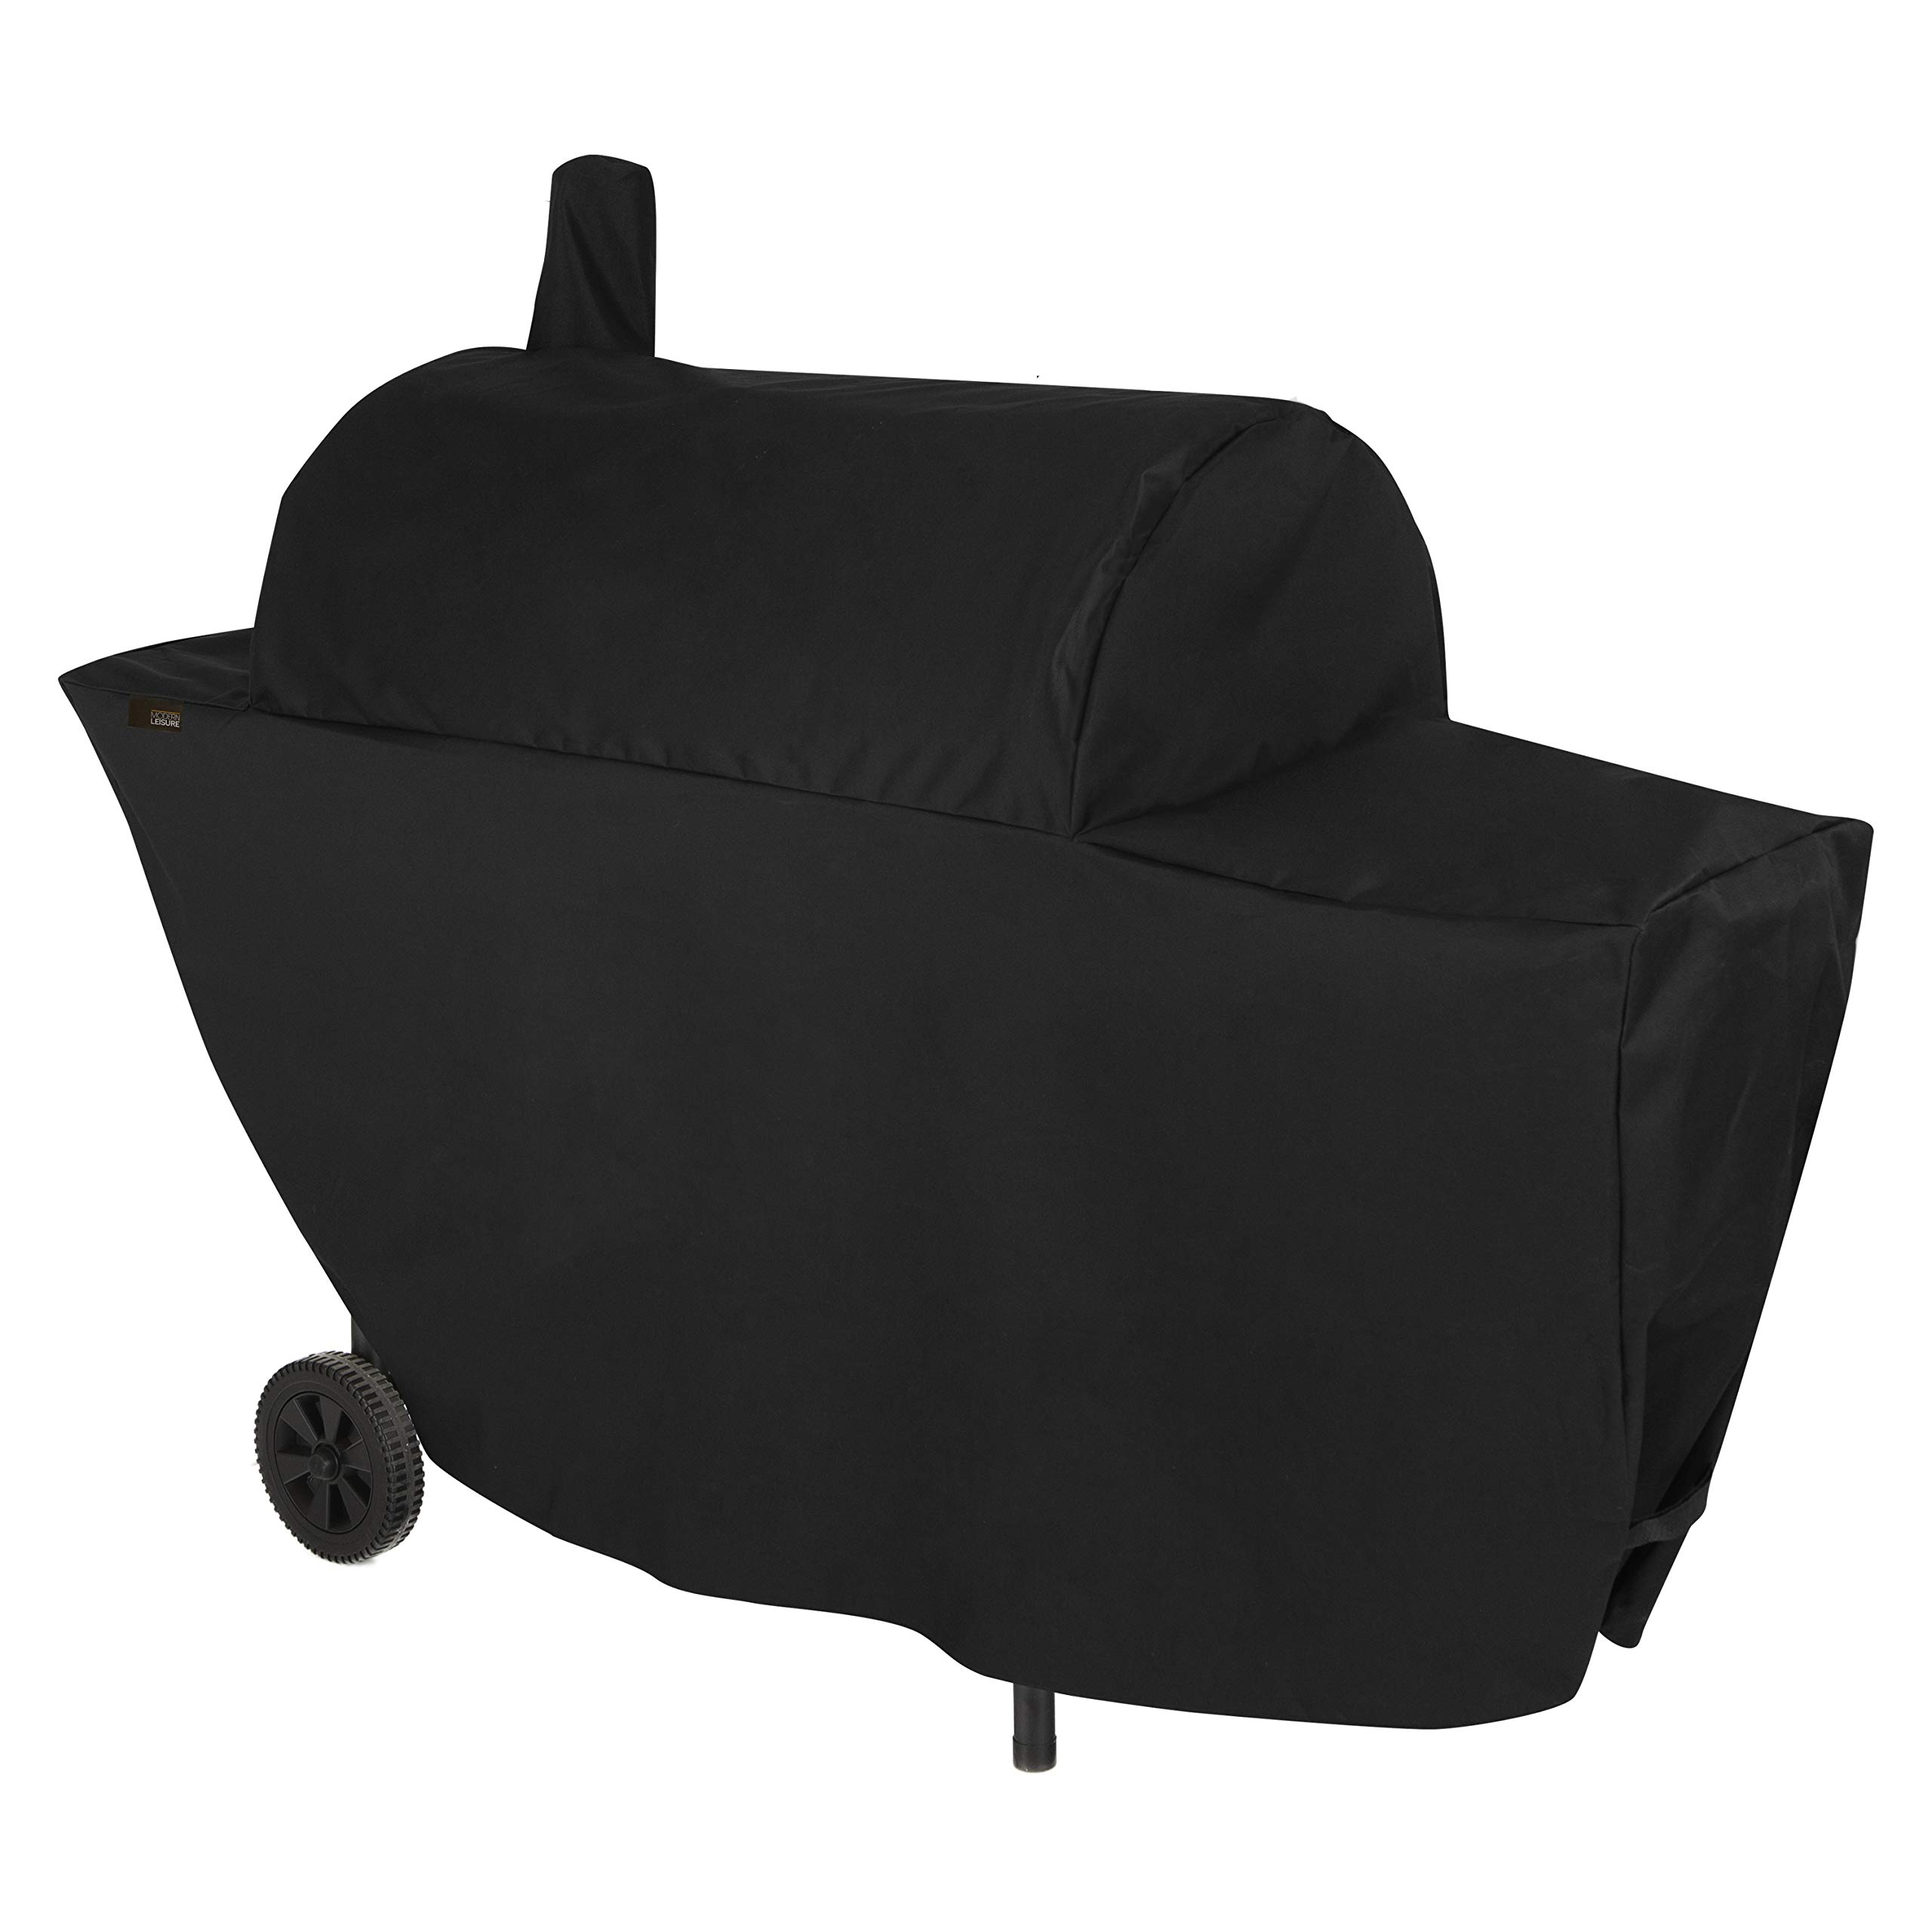 Modern Leisure 2981 Chalet Chimney Smoker BBQ Charcoal Grill Cover (67 L x 26 D x 50 H inches) Waterproof, Black